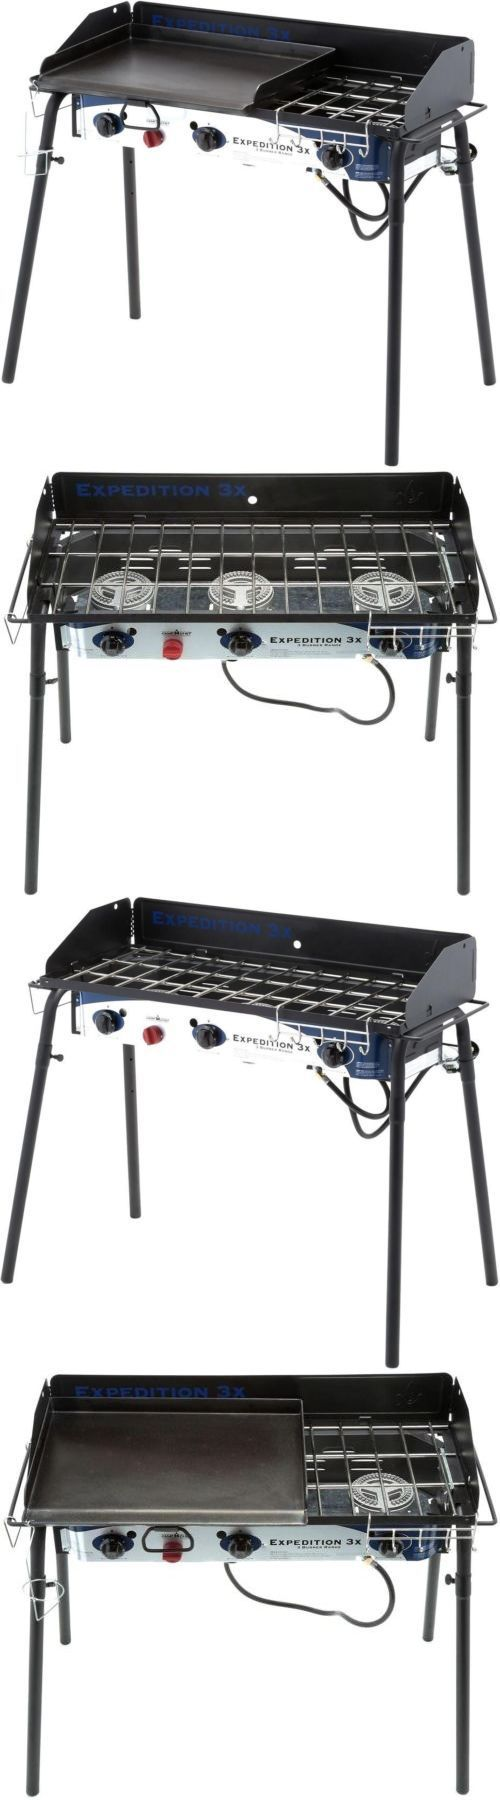 Camping BBQs and Grills 181388: Camp Chef Expedition 3X 3 Burner Propane Gas Grill Black With Griddle New -> BUY IT NOW ONLY: $255.52 on eBay!